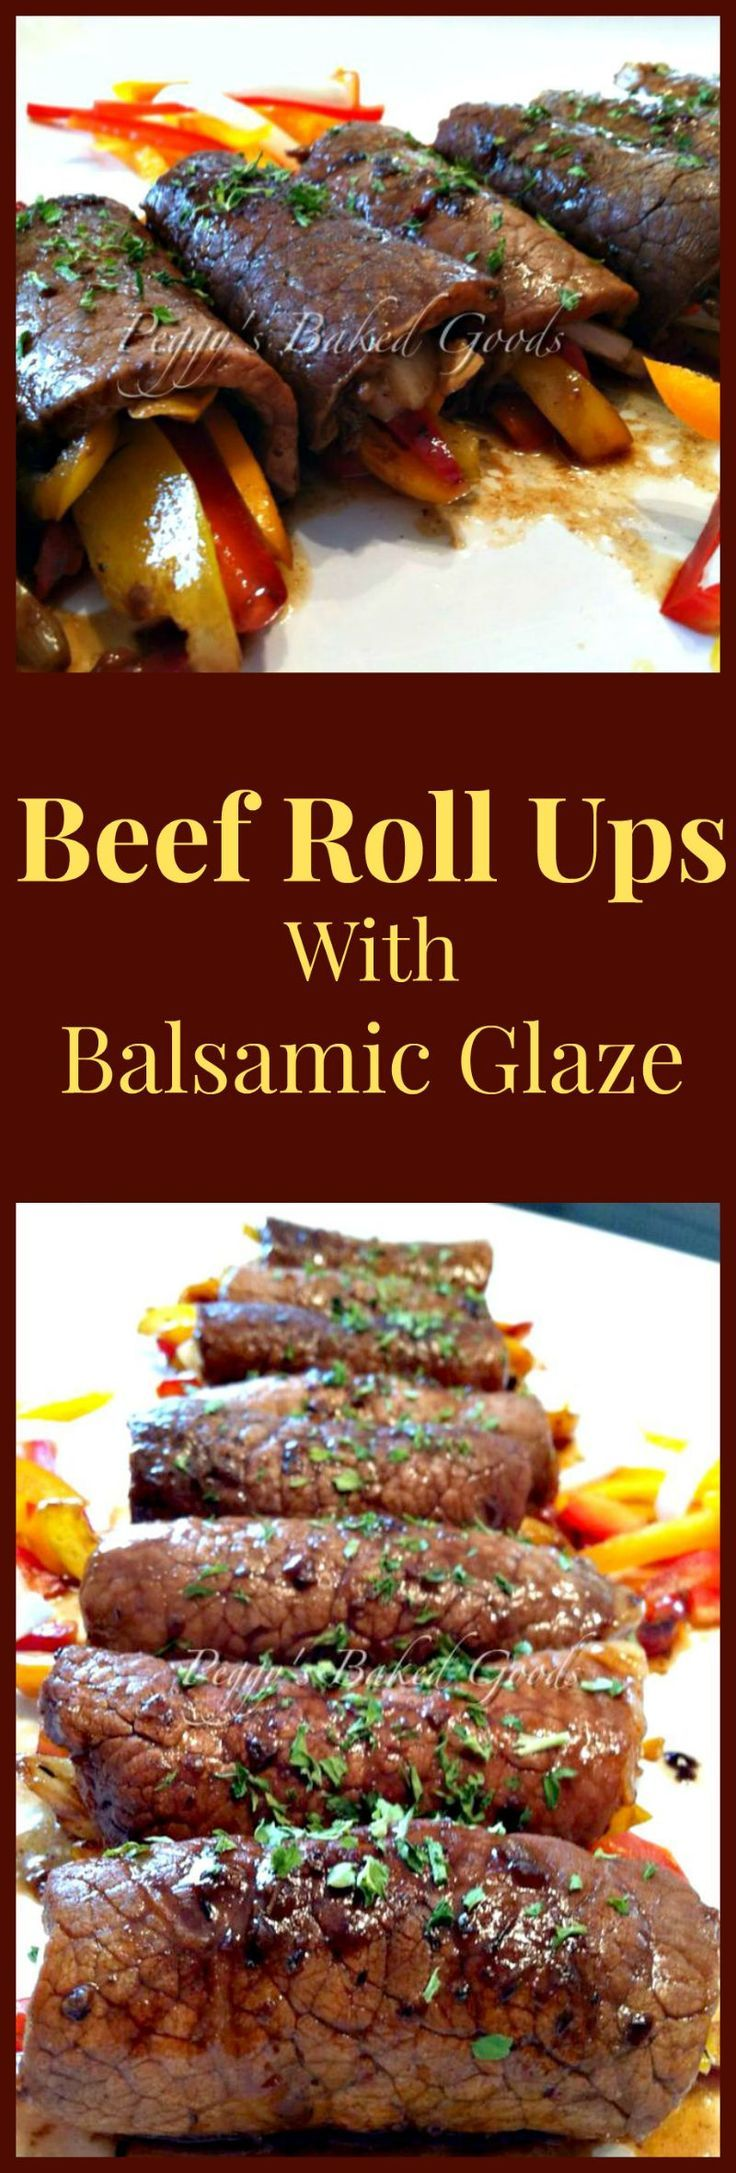 Beef Roll Ups . Delicious tender pieces of beef wrapped around cheese and veggies, and coated in a lovely Balsamic Glaze. A really quick and easy recipe too!